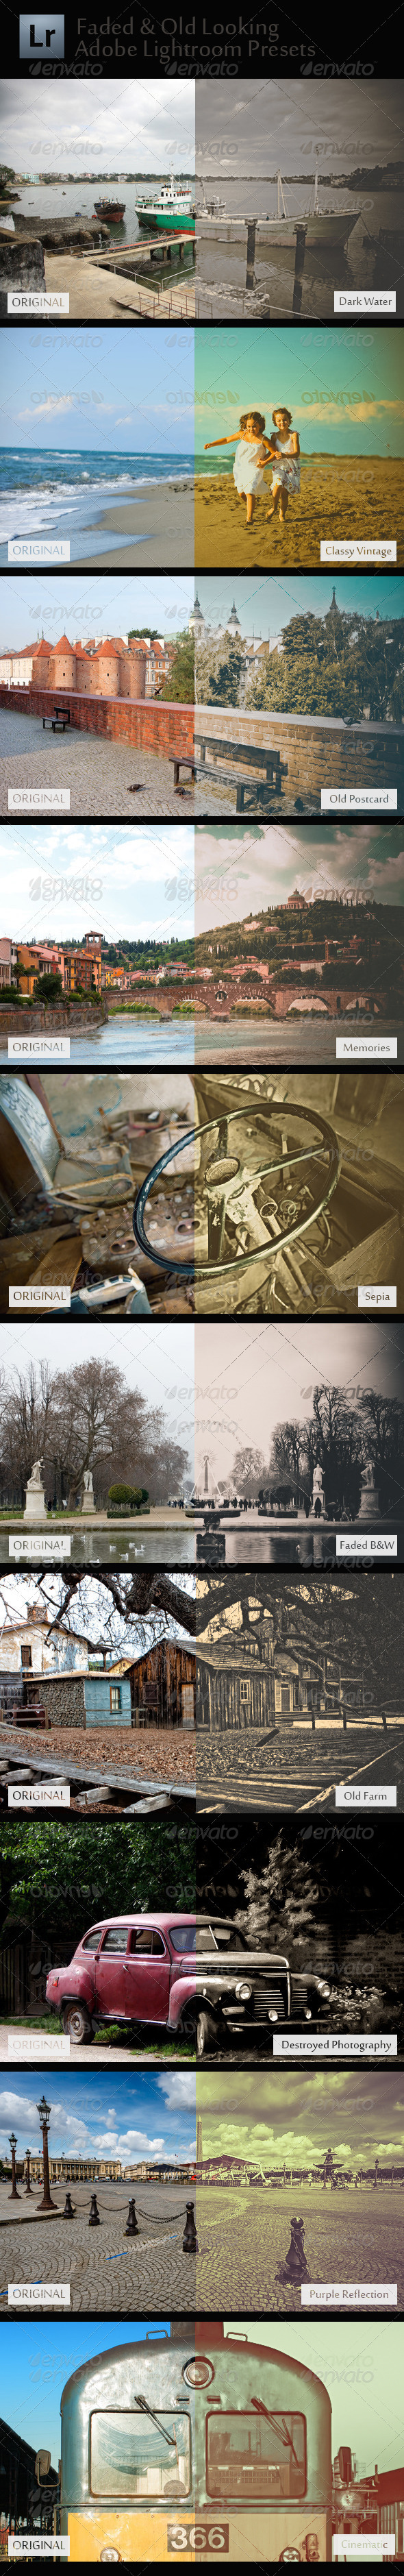 GraphicRiver 10 Faded & Old Looking Adobe Lightroom Presets 5309267